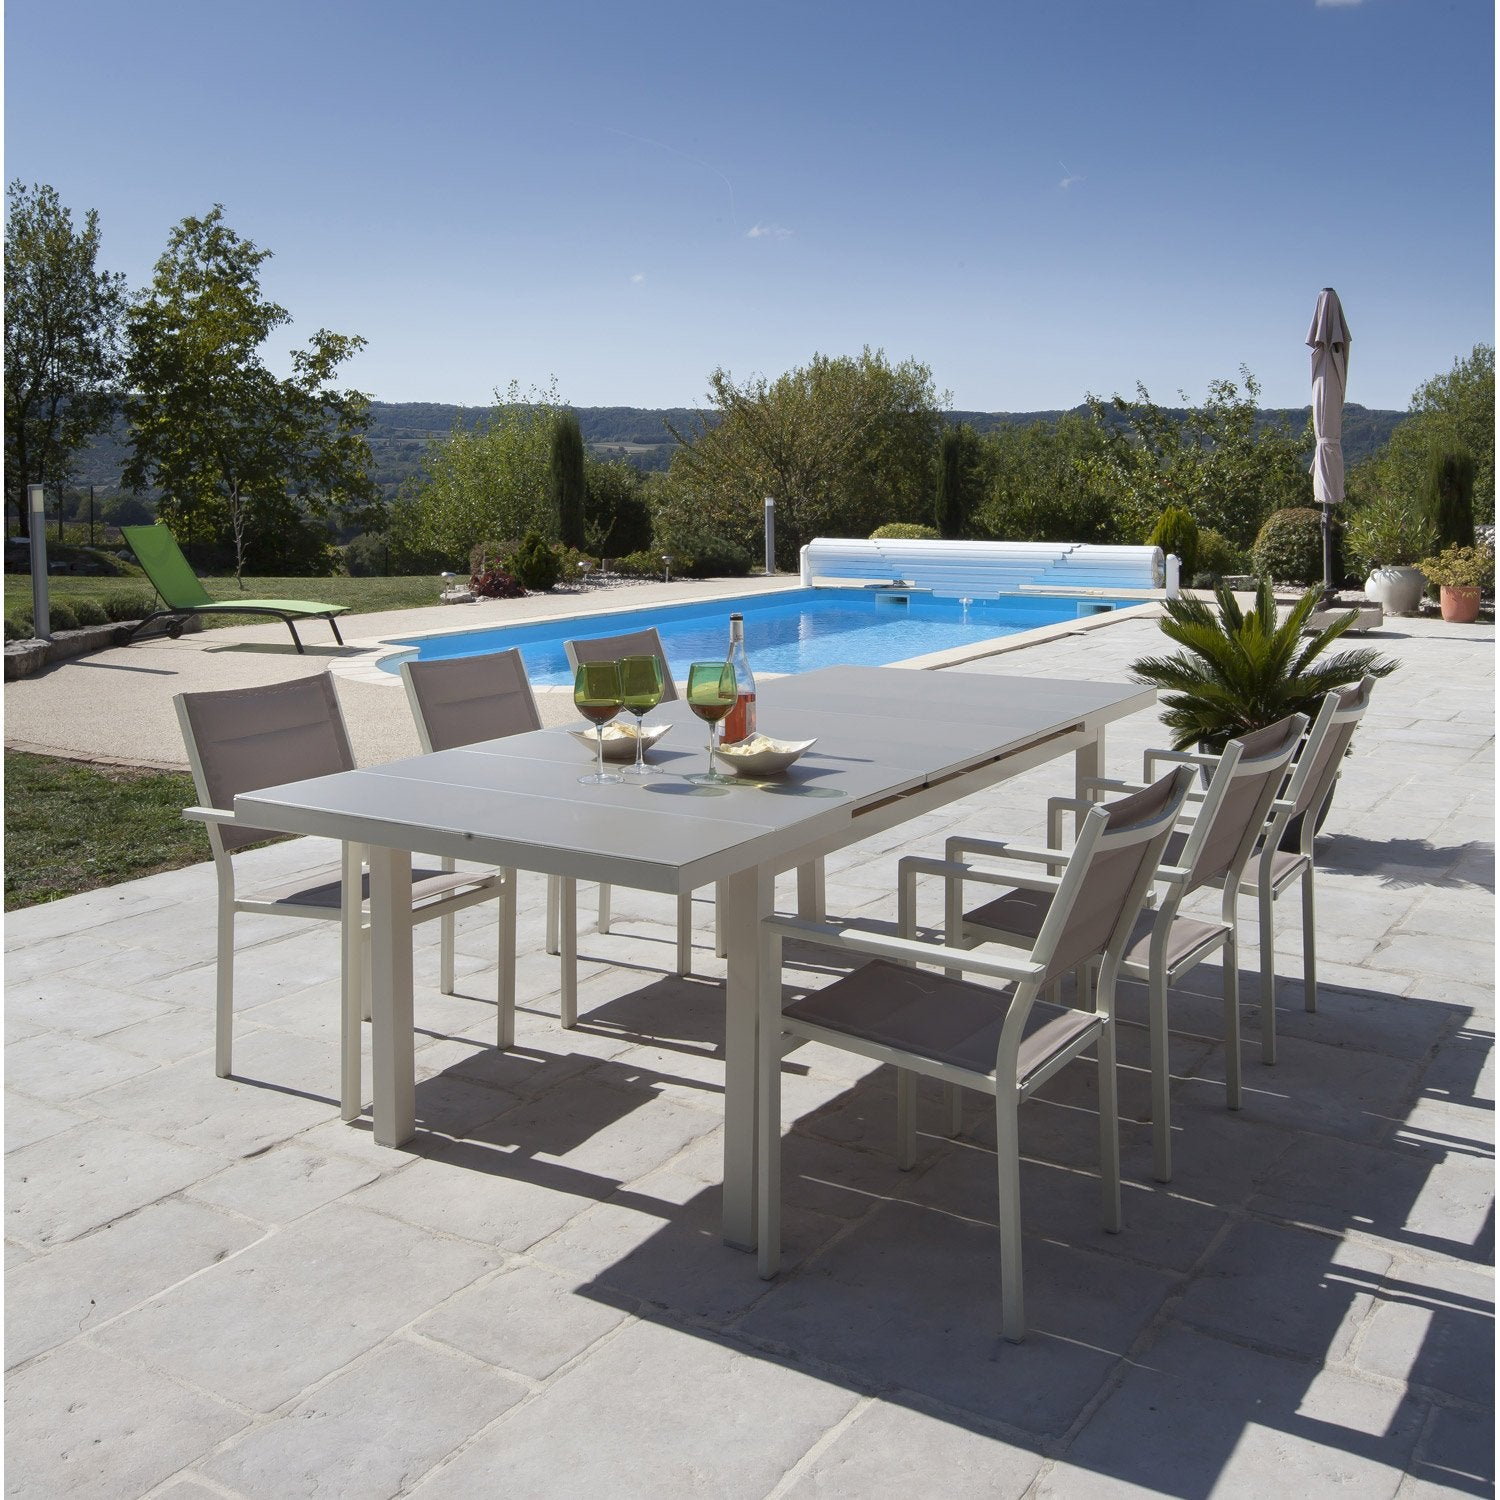 Salon de jardin malaga aluminium taupe 1 table et 6 for Salon de jardin couleur taupe